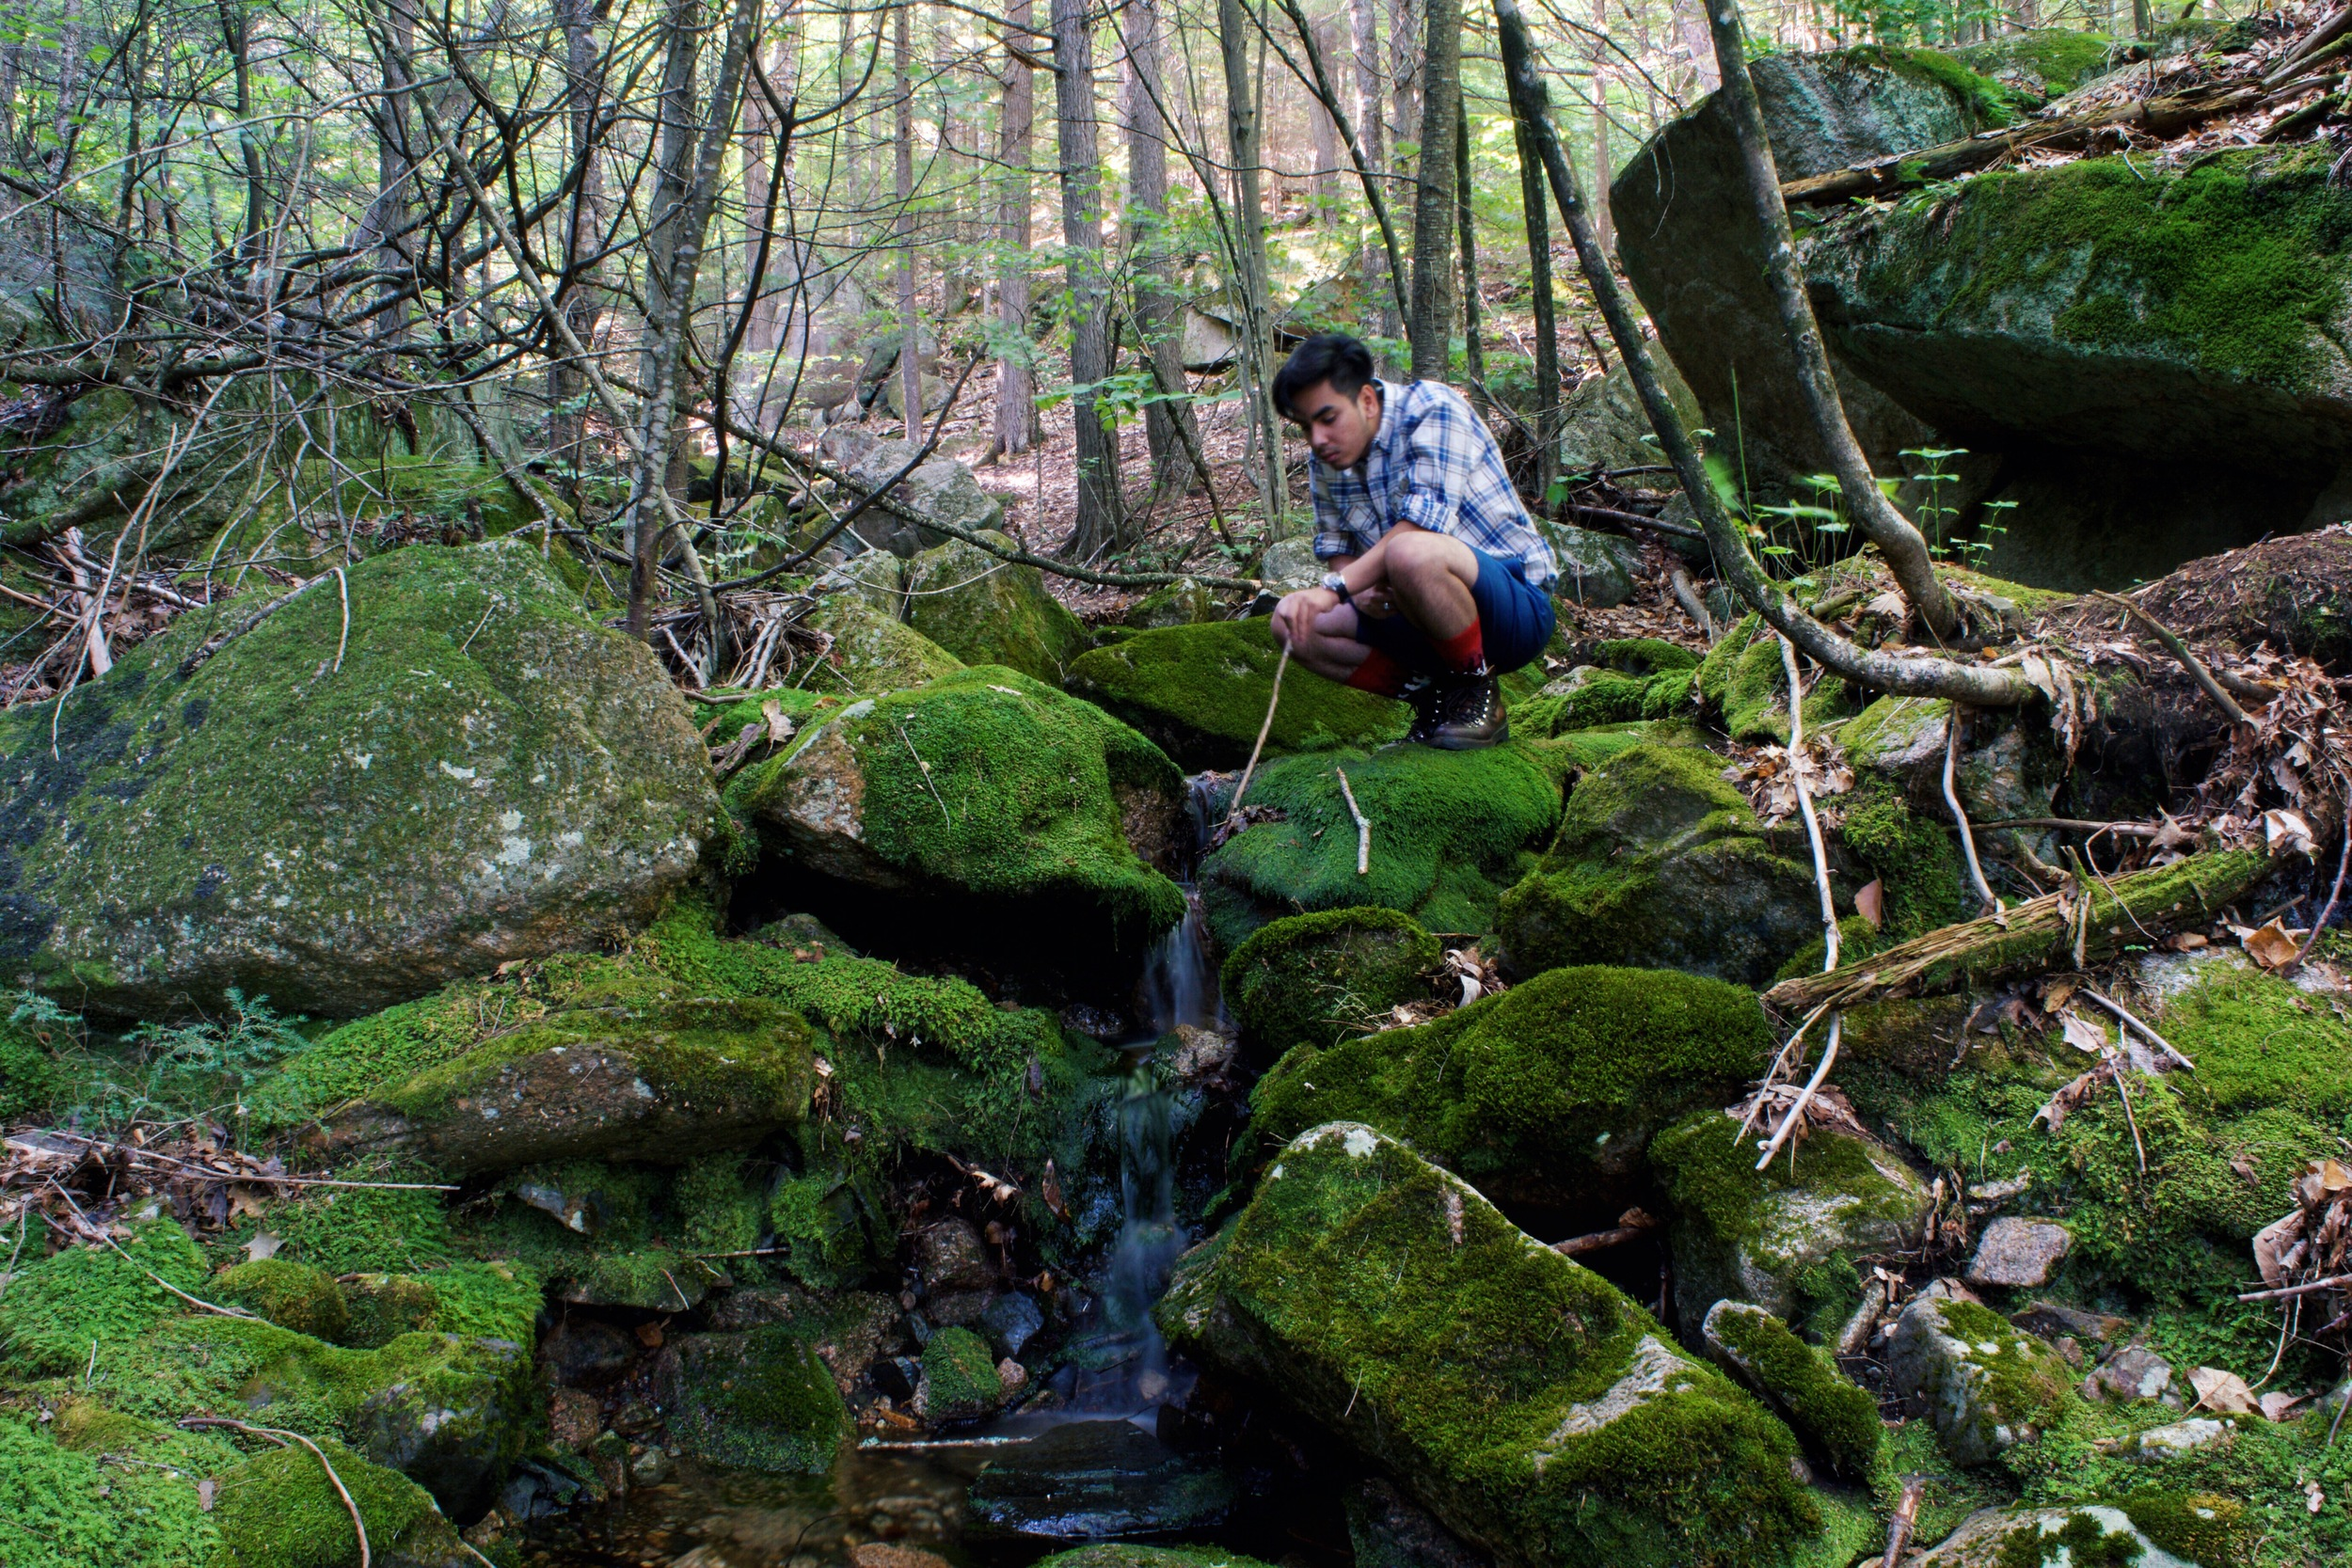 Survival 101: Locate Water Source